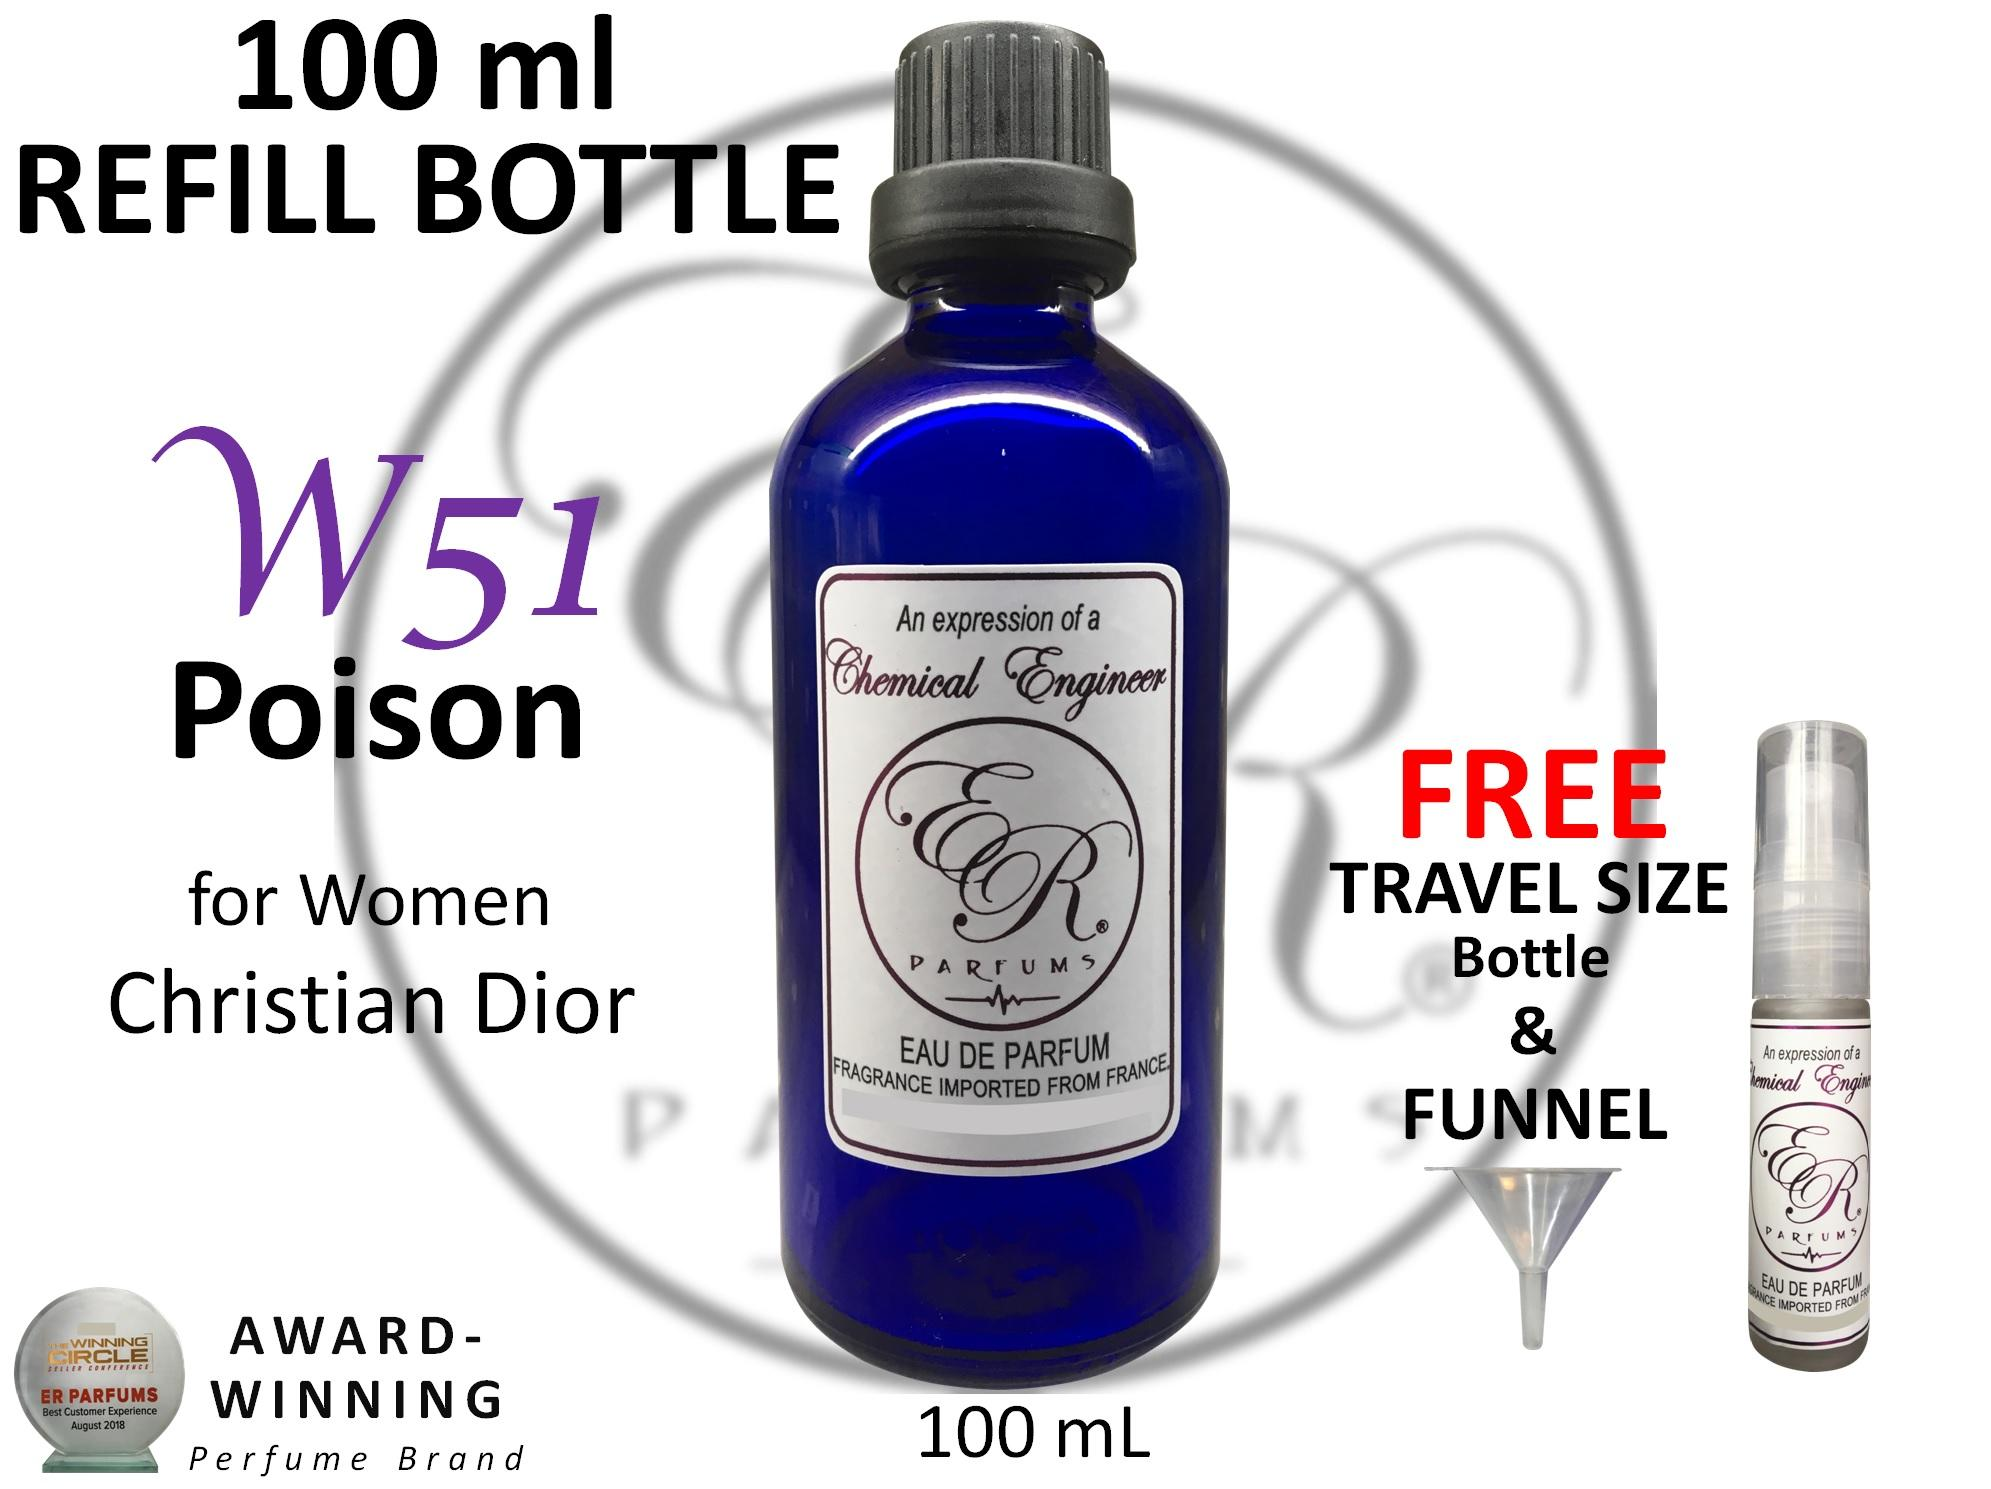 ER PARFUMS W51 Poison for Women by Christian Dio r 1 piece 100 mL REFILL BOTTLE with FREE Empty Bottle - BEST VERSION